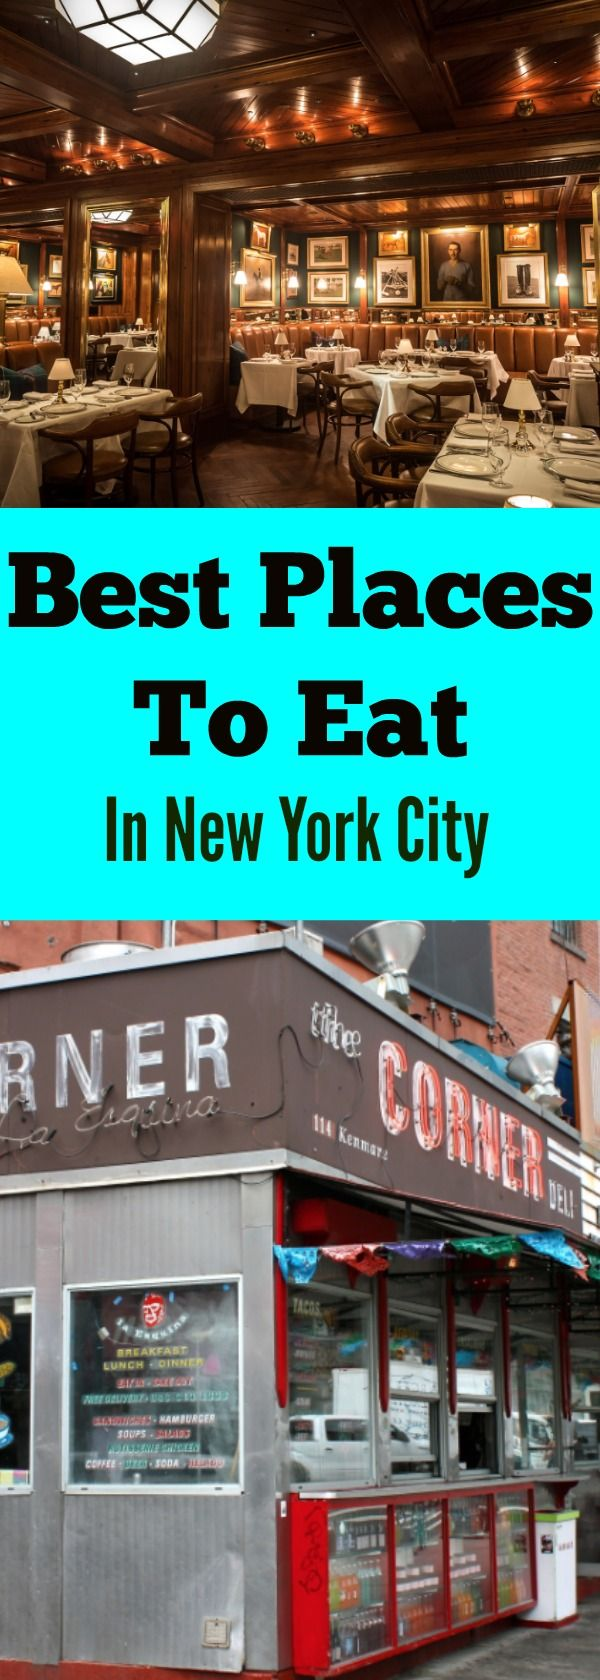 Good places for dating in new york